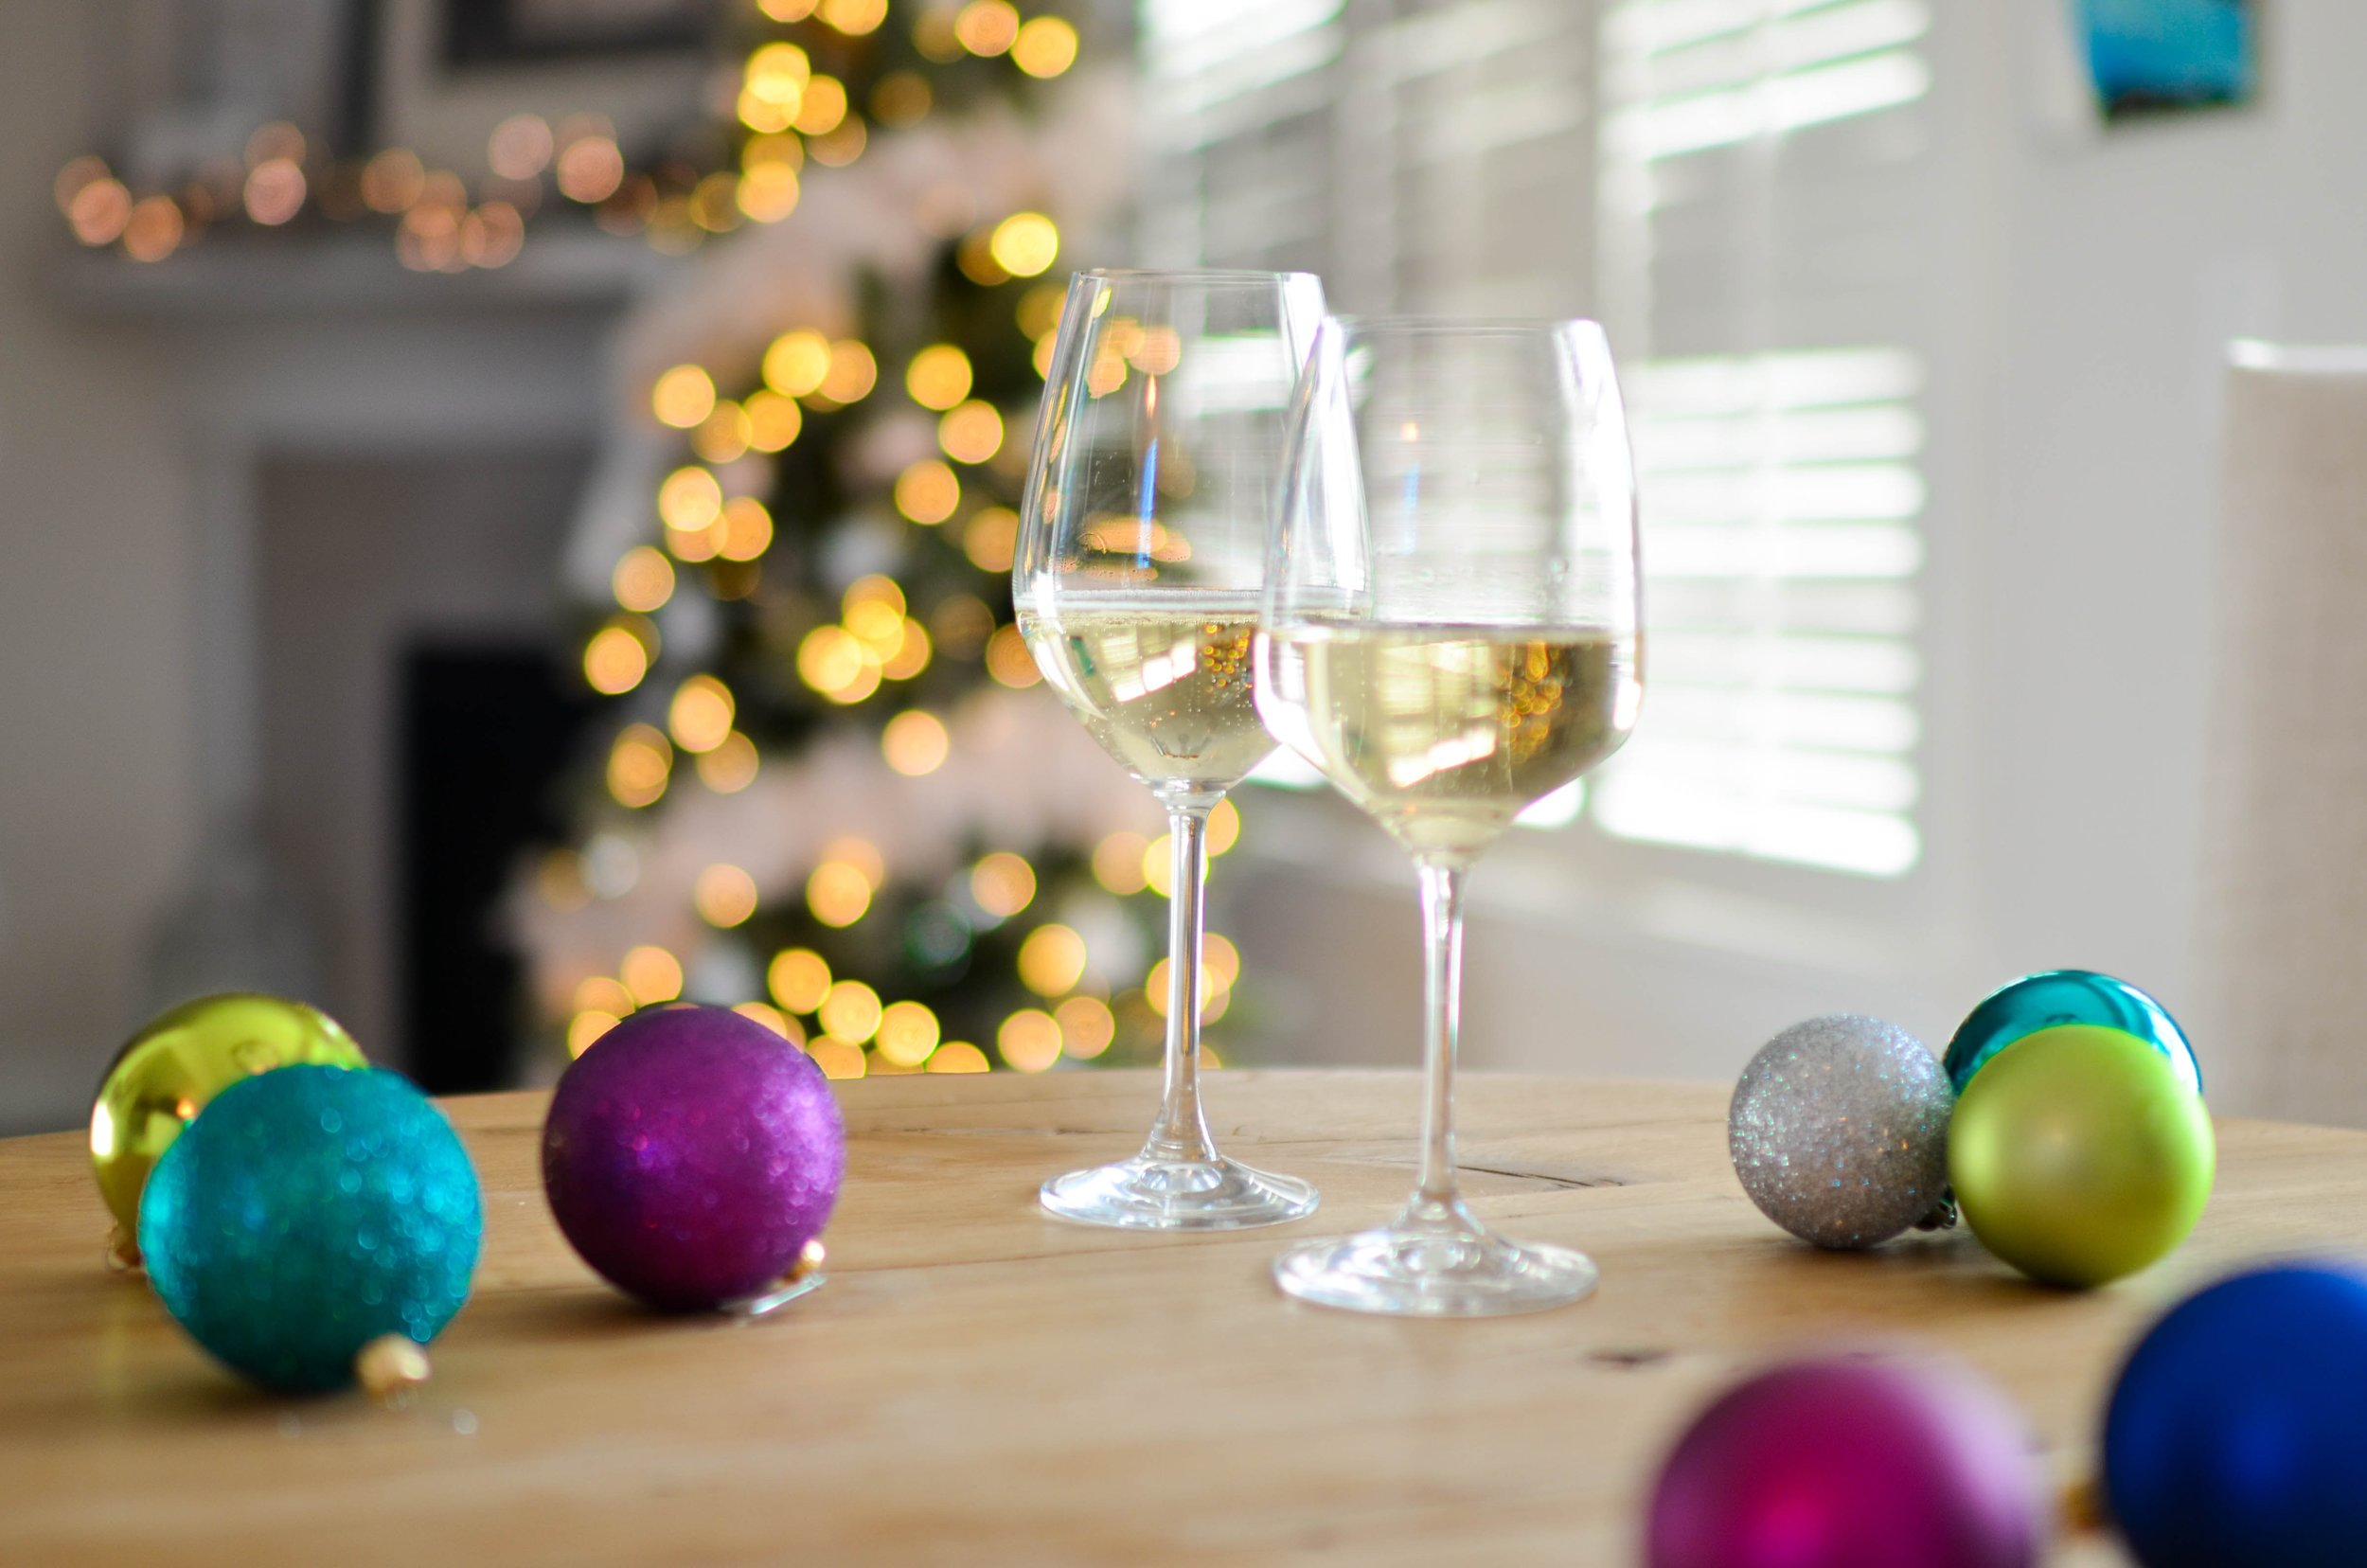 Wine-Glass-Holidays.jpg